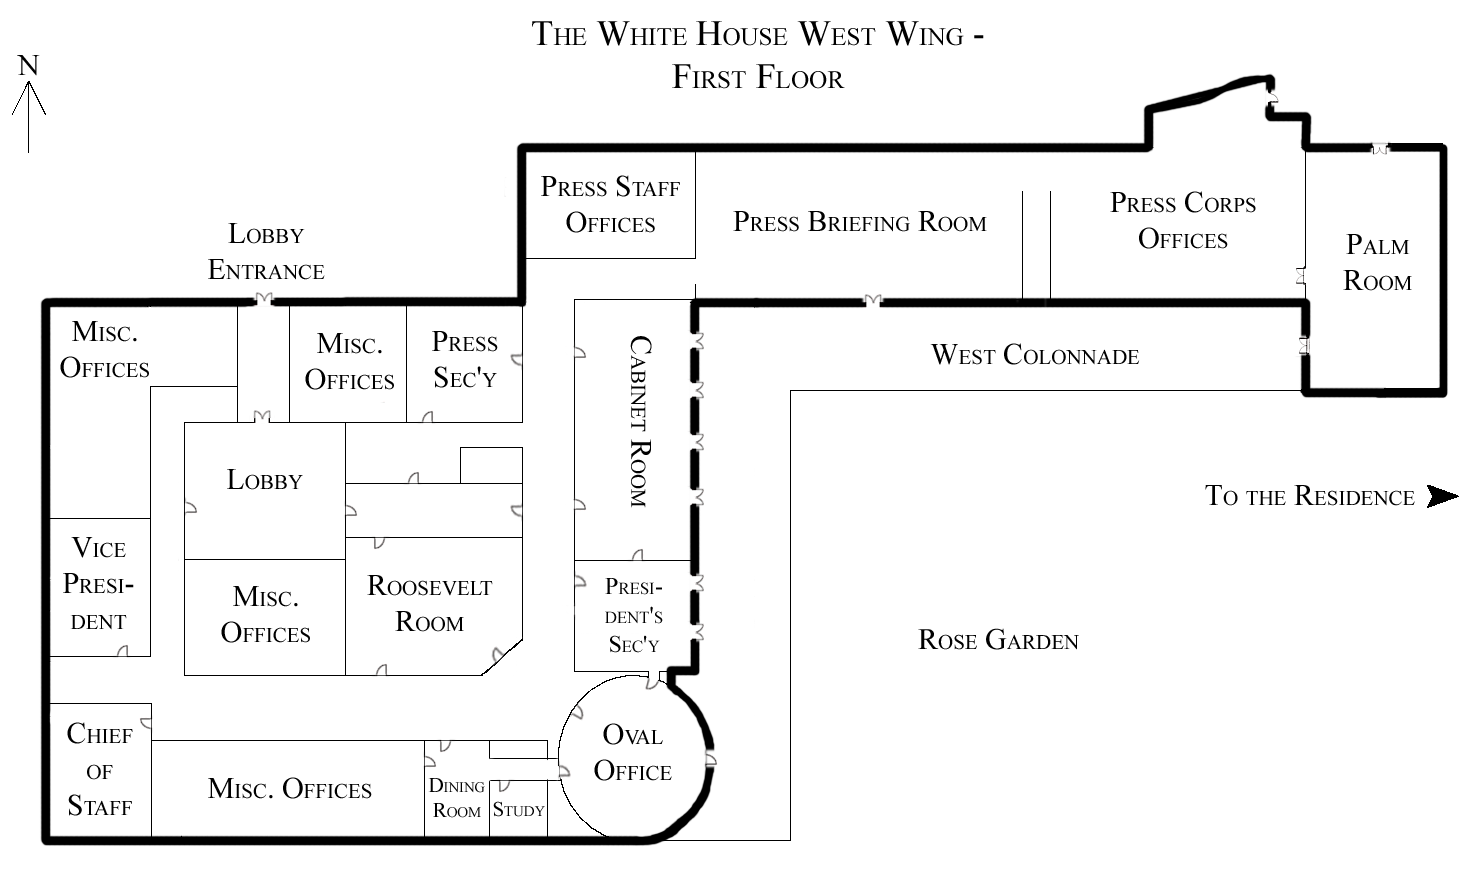 File:White House West Wing - 1st Floor.png - Wikimedia Commons